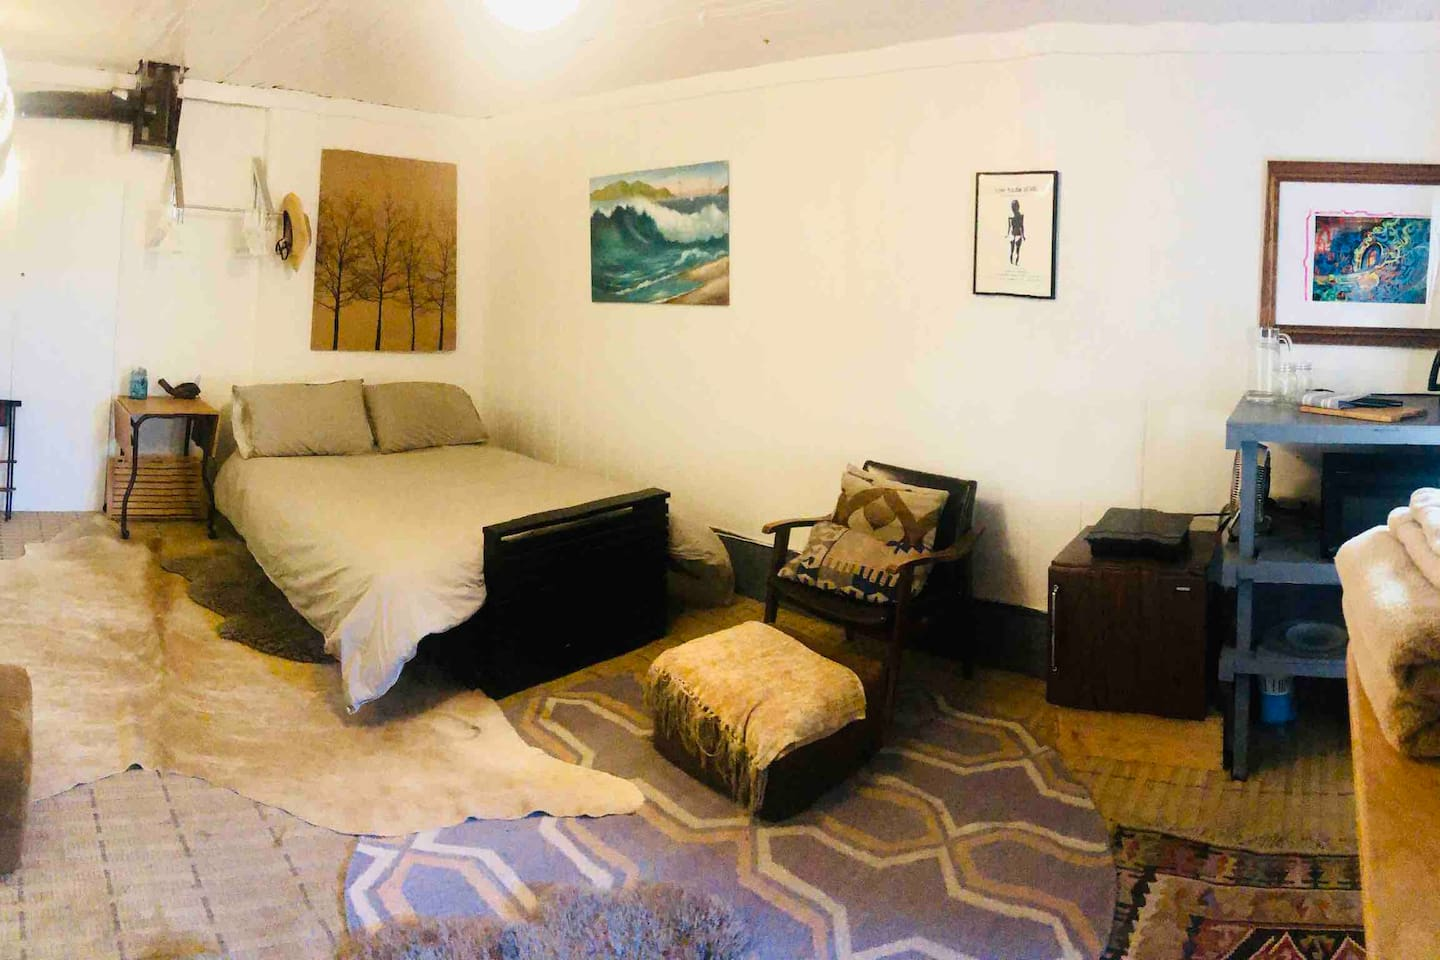 Serene, thoughtfully-appointed, private room on lower level of home with full size bed, cotton linens, TV, fan, space heater, local art, standing desk, fridge, microwave, coffee maker, hairdryer, local and vintage surf magazines plus small library